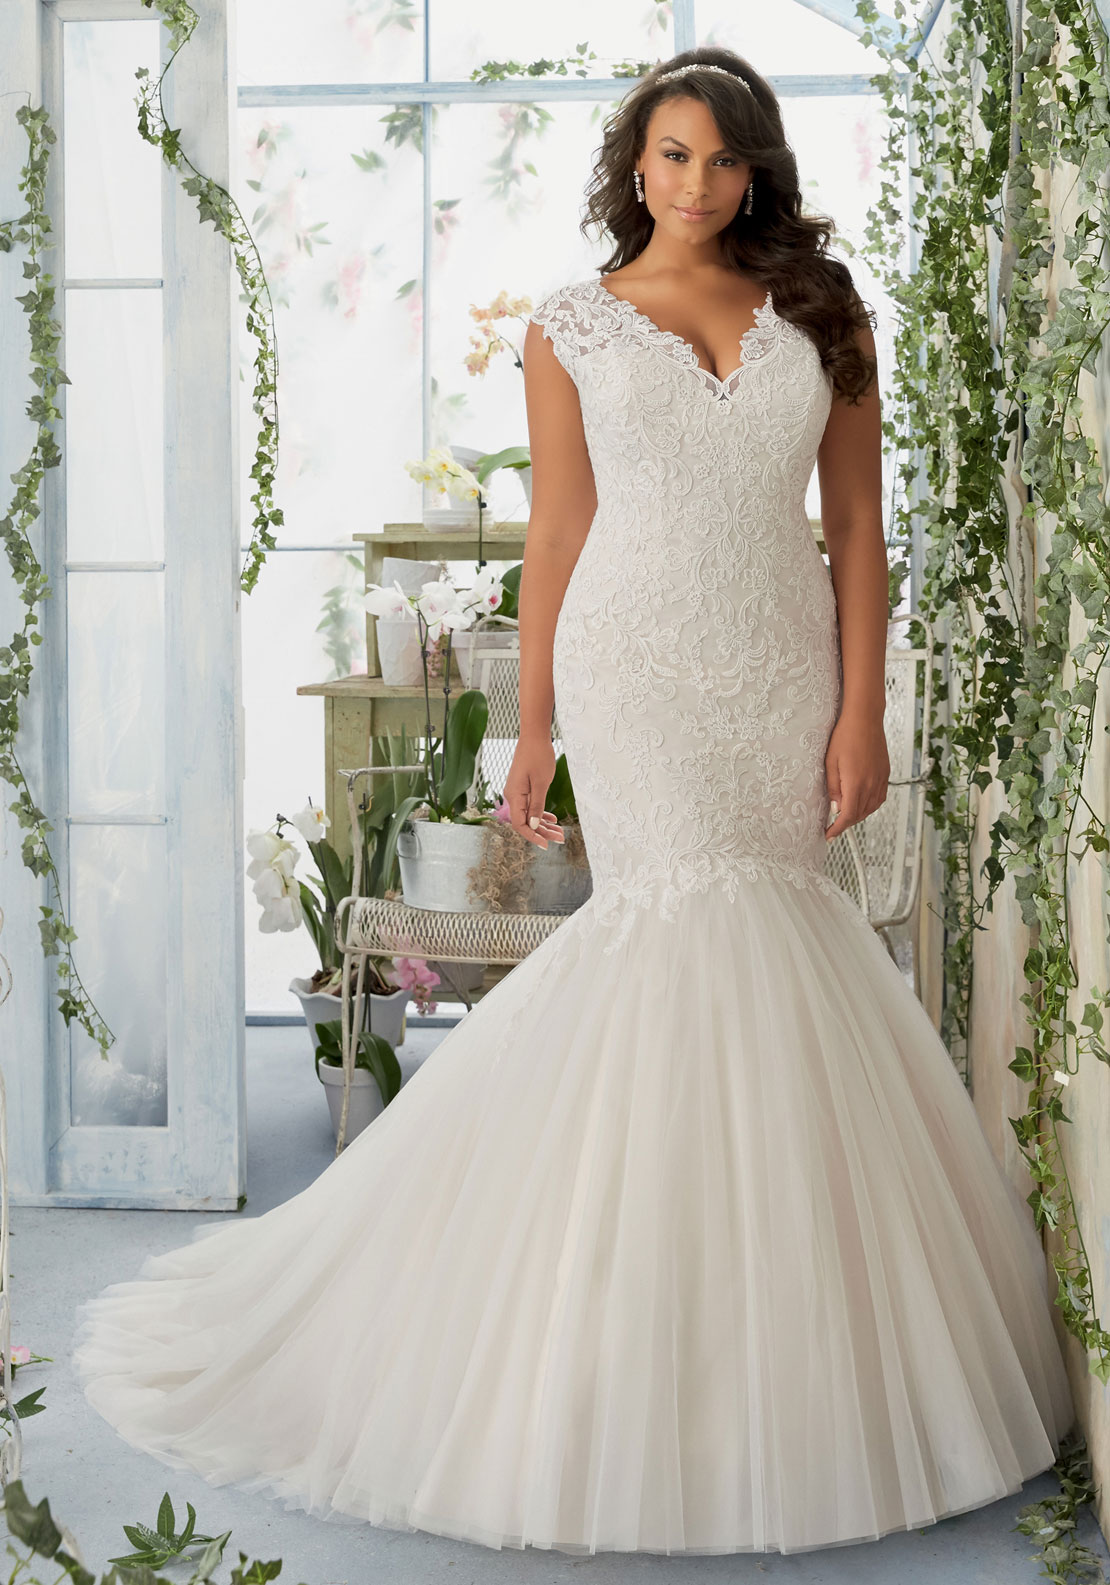 MORI LEE BRIDAL 20S IVO